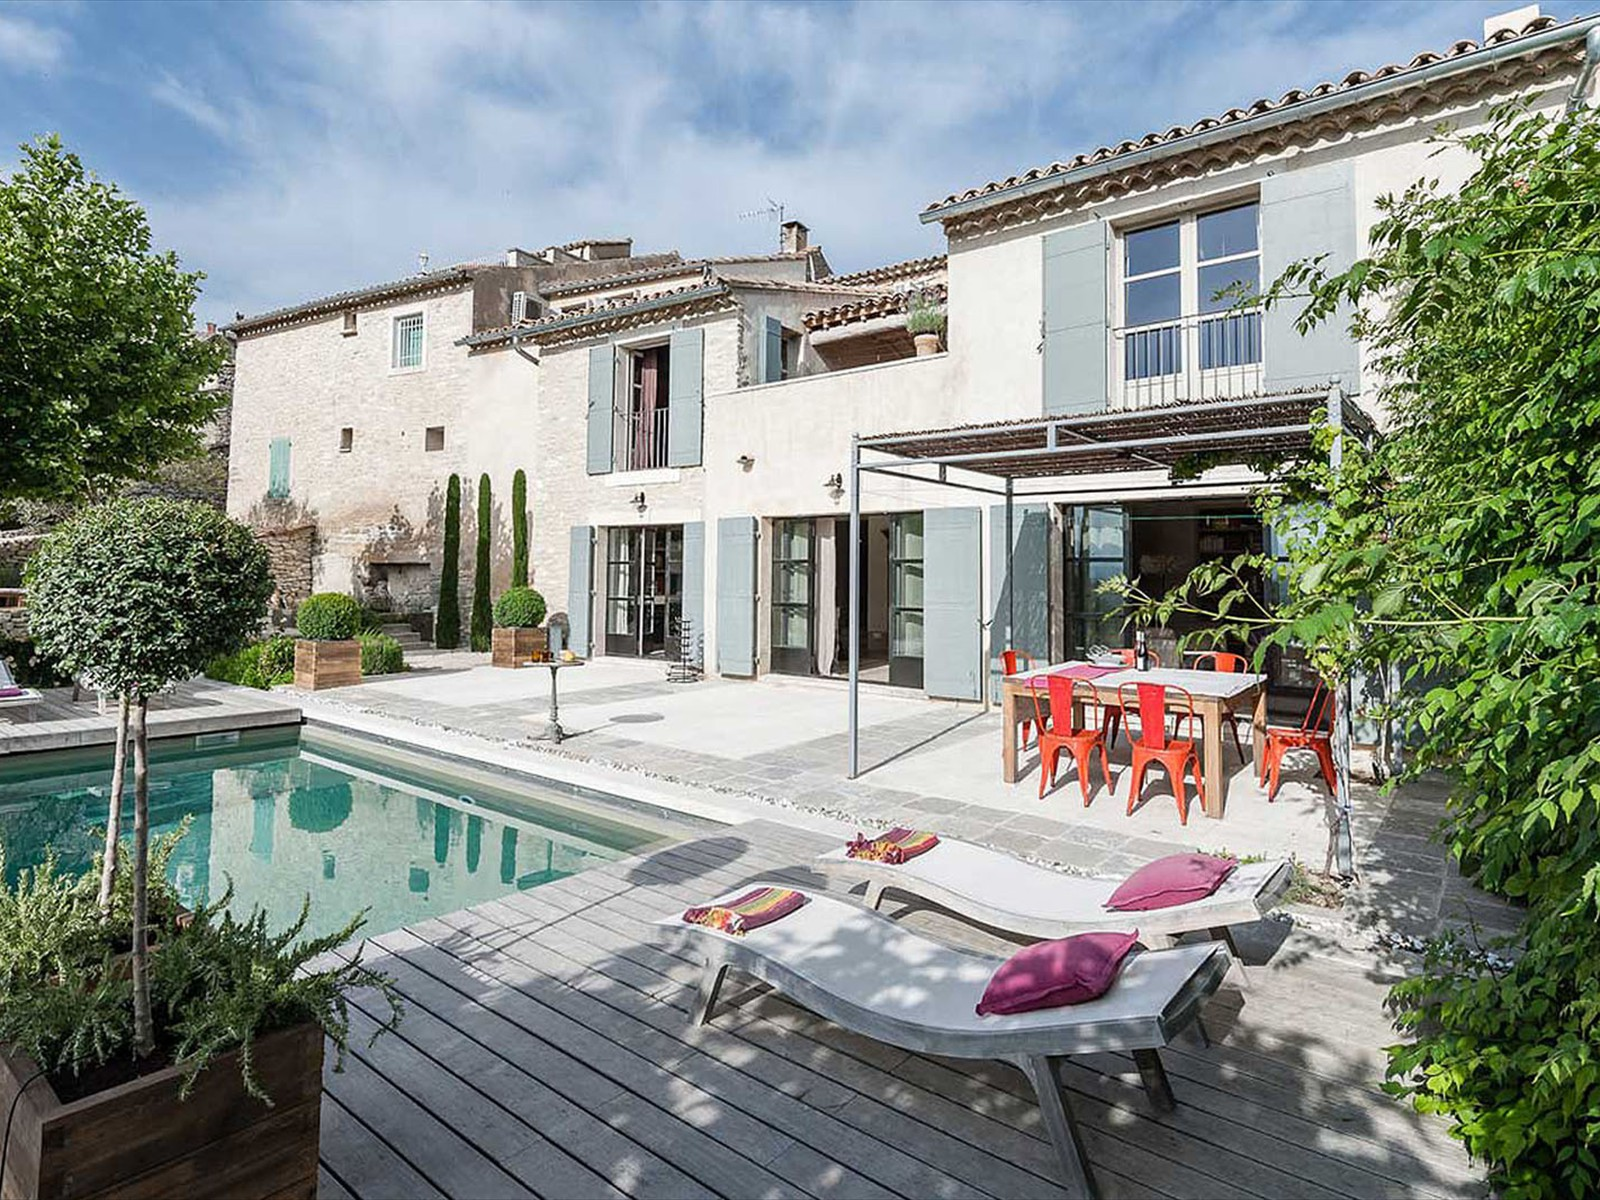 exclusive_rentals_provence_vacation_luxury_homes_holiday_rentals_mont_ventoux_luberon_02